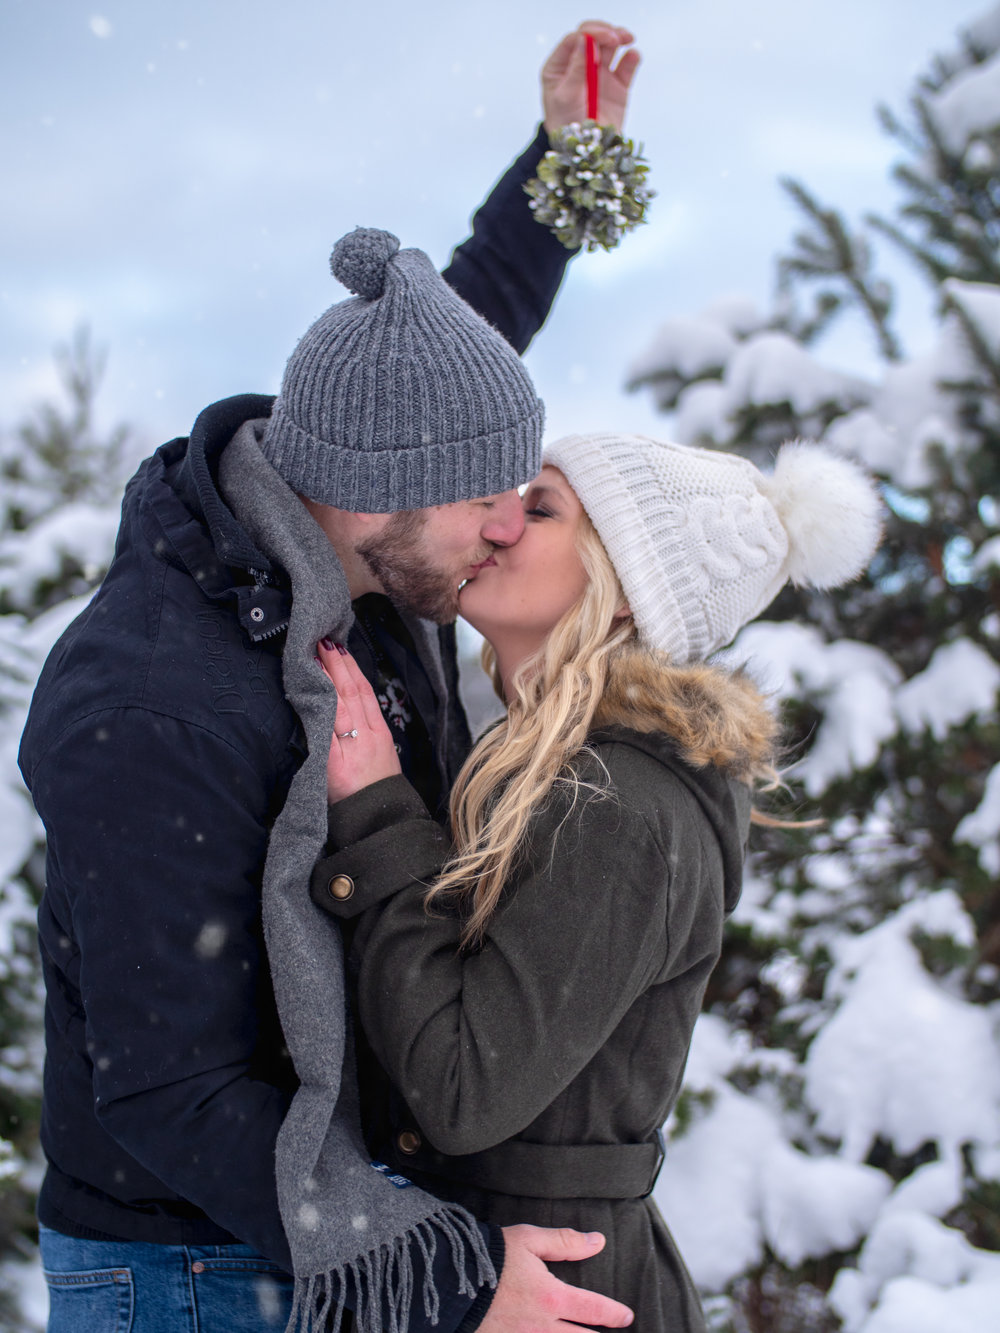 kiss photography snow cold